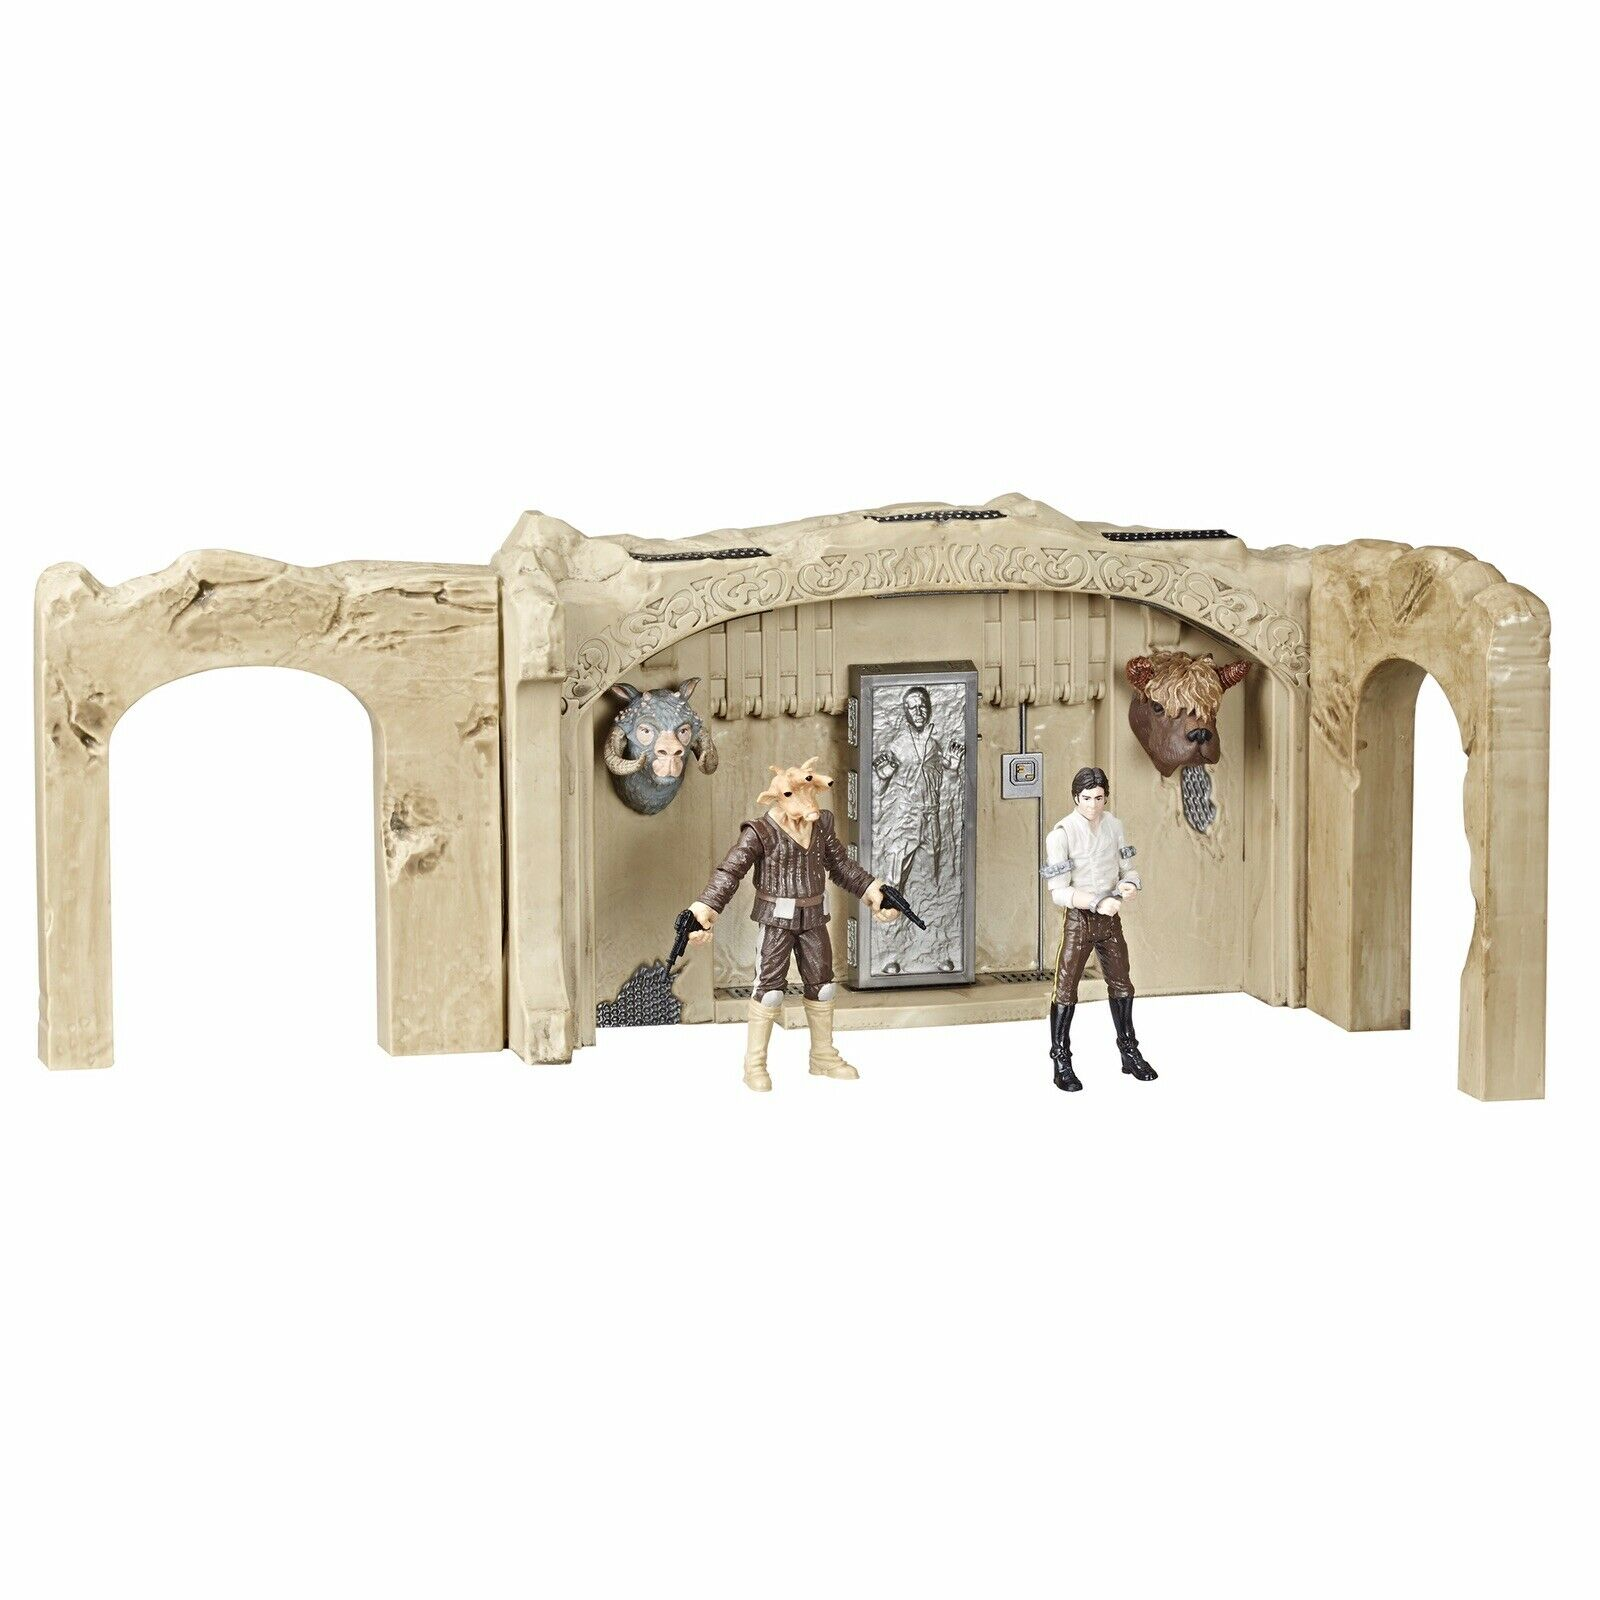 Star Wars Vintage Collection Jabba 65533;65533sPalace Playgset Walmkonst Exklusiv Han Solo